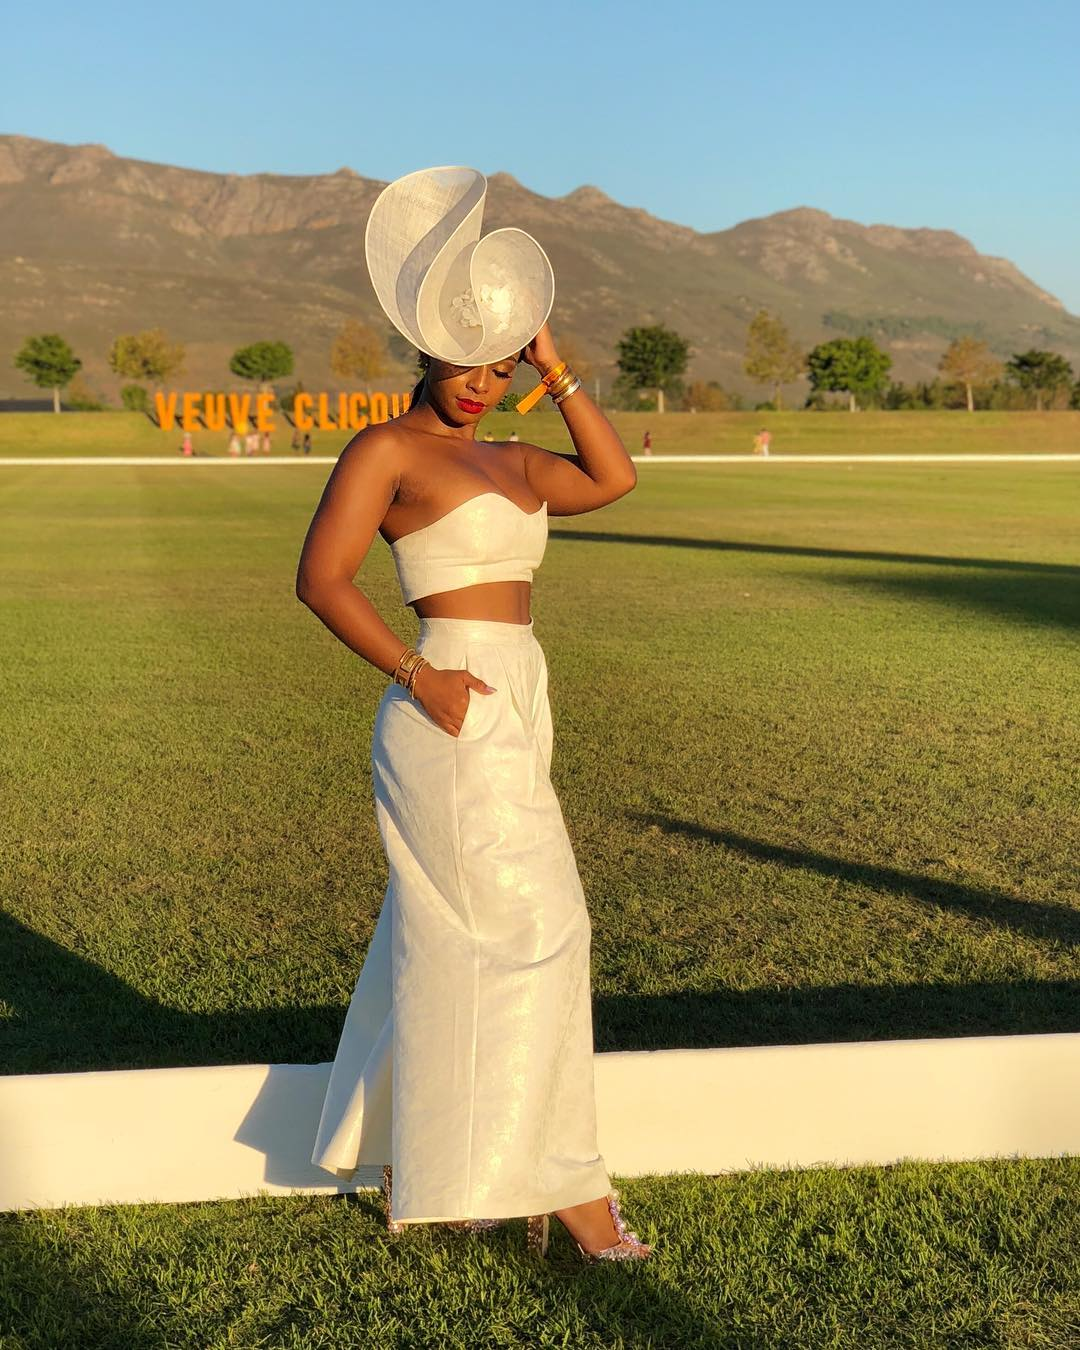 the-looks-that-stole-the-spotlight-at-the-2018-veuve-clicquot-masters-polo-in-cape-town